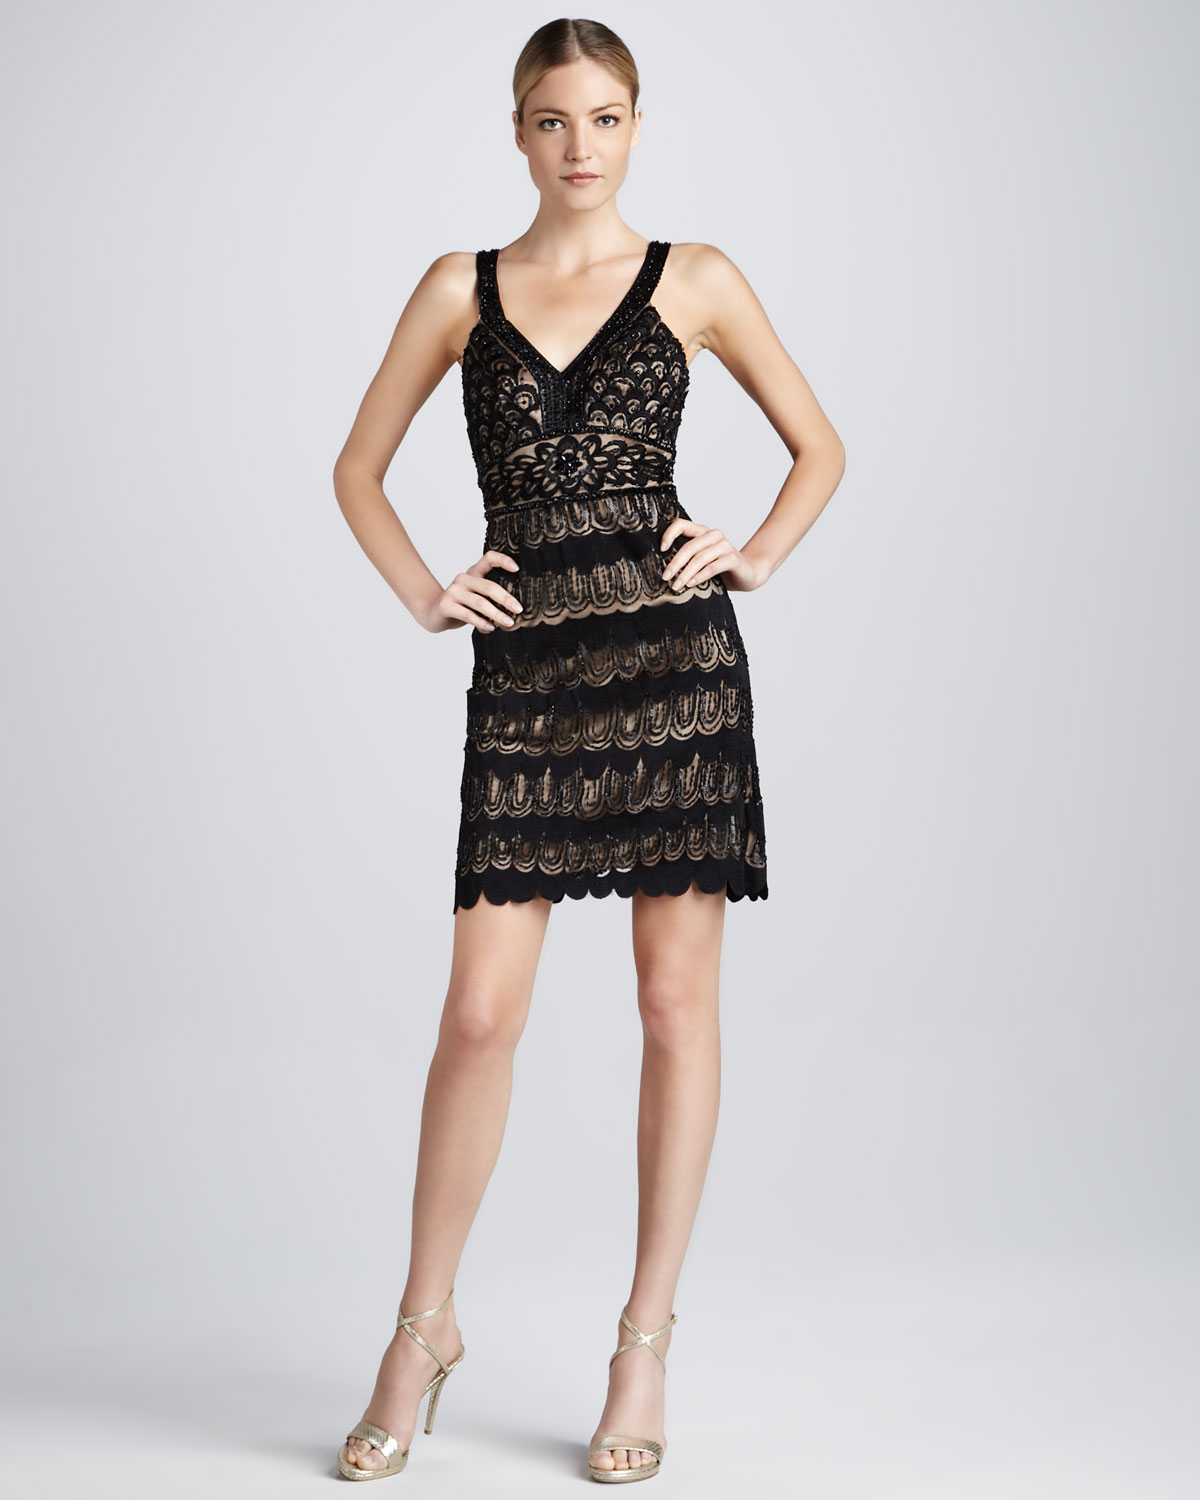 Lace Cocktail Dress - Dressed Up Girl